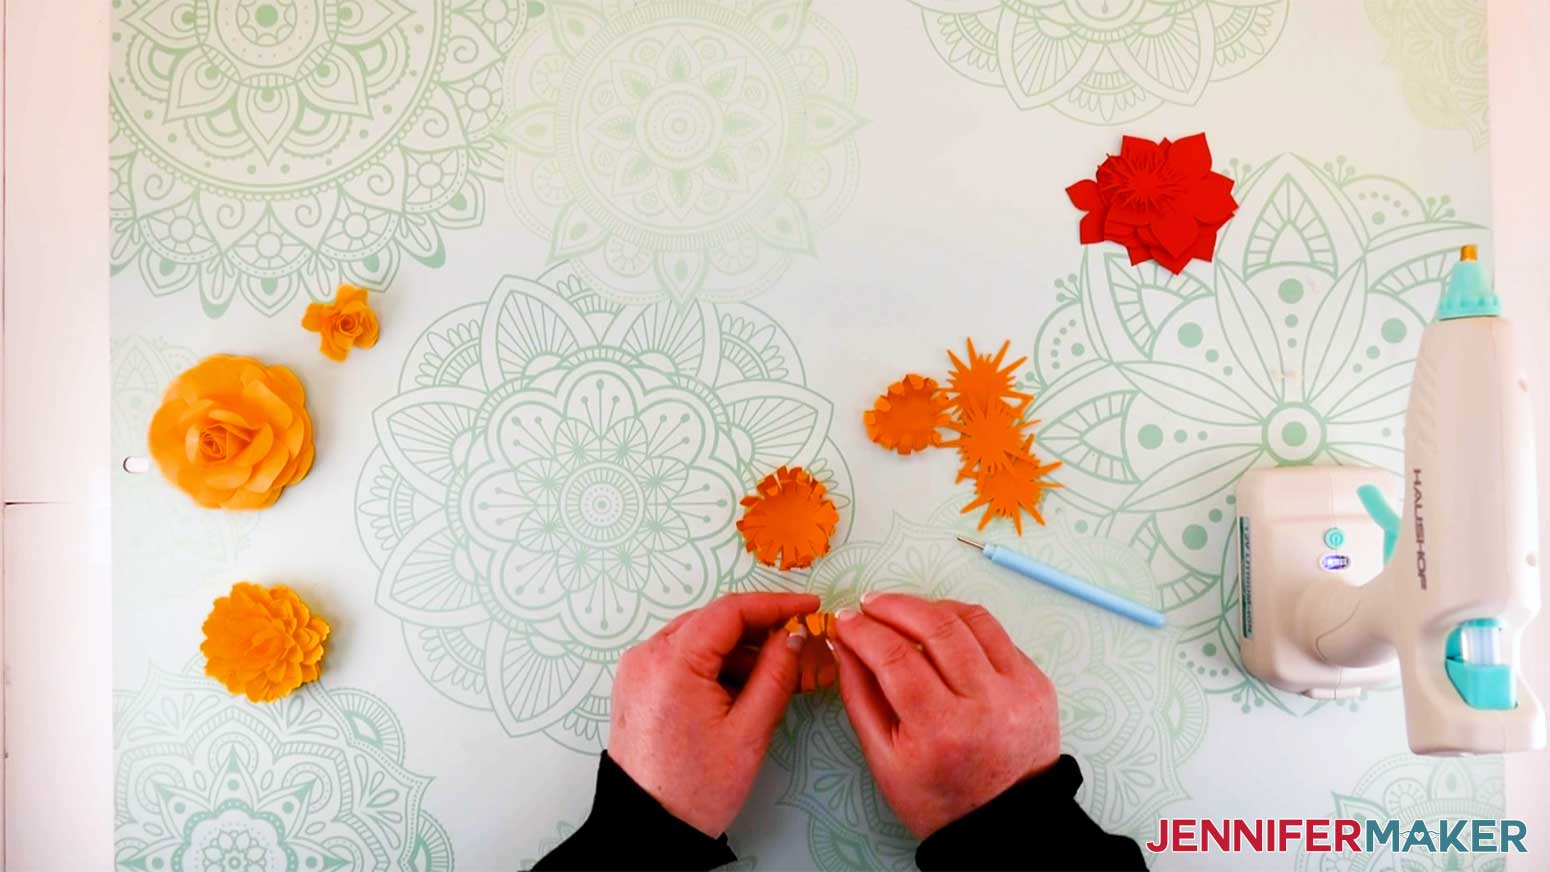 curling the petals of the paper flower mum for my paper flower letter